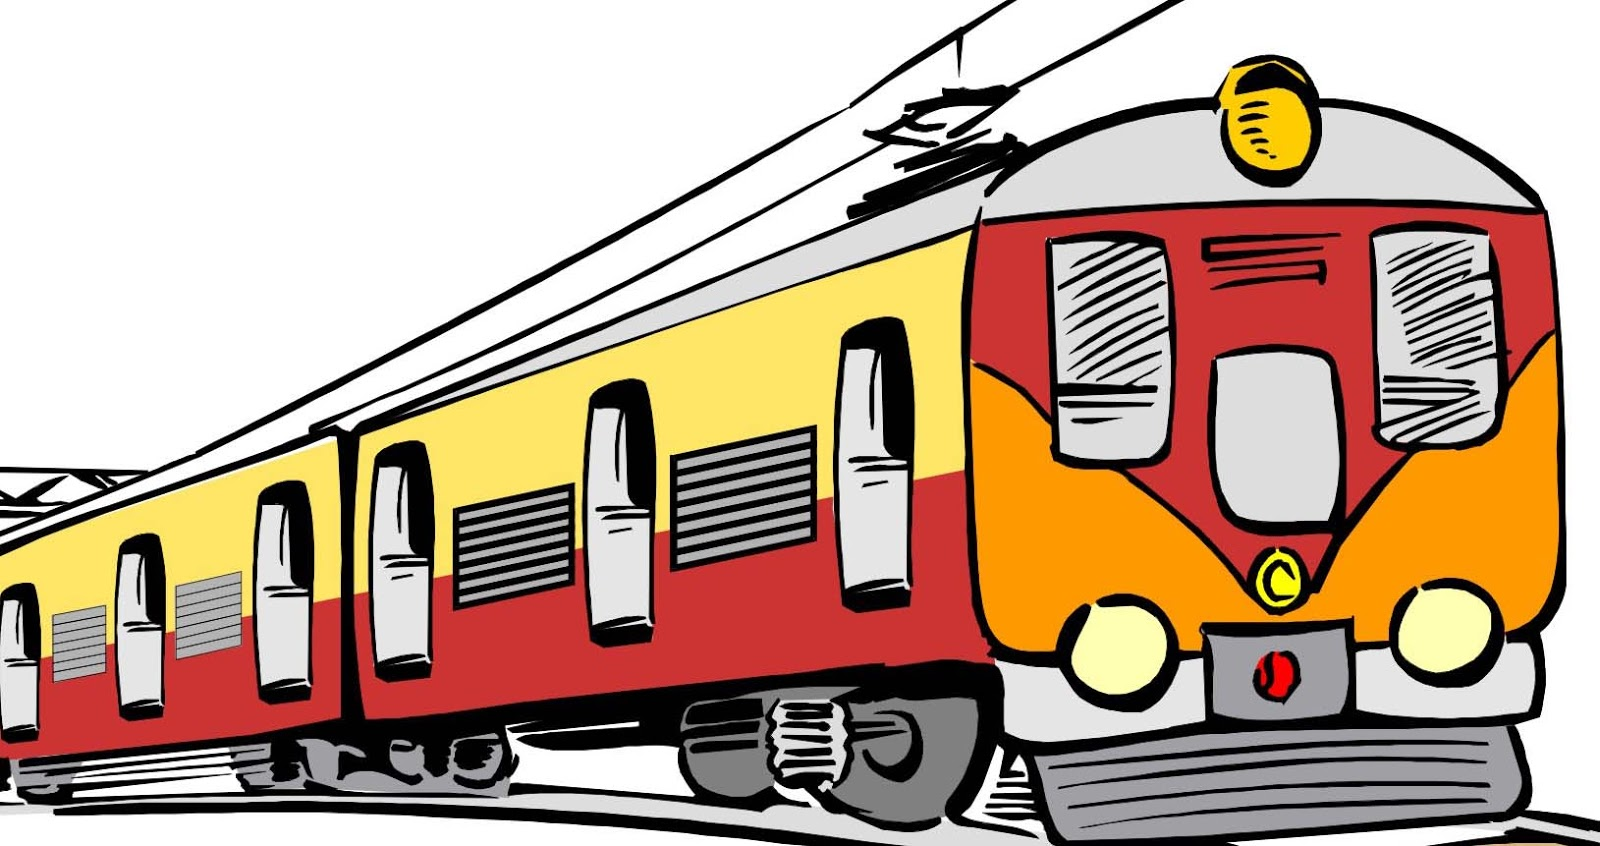 Indian railway clipart.